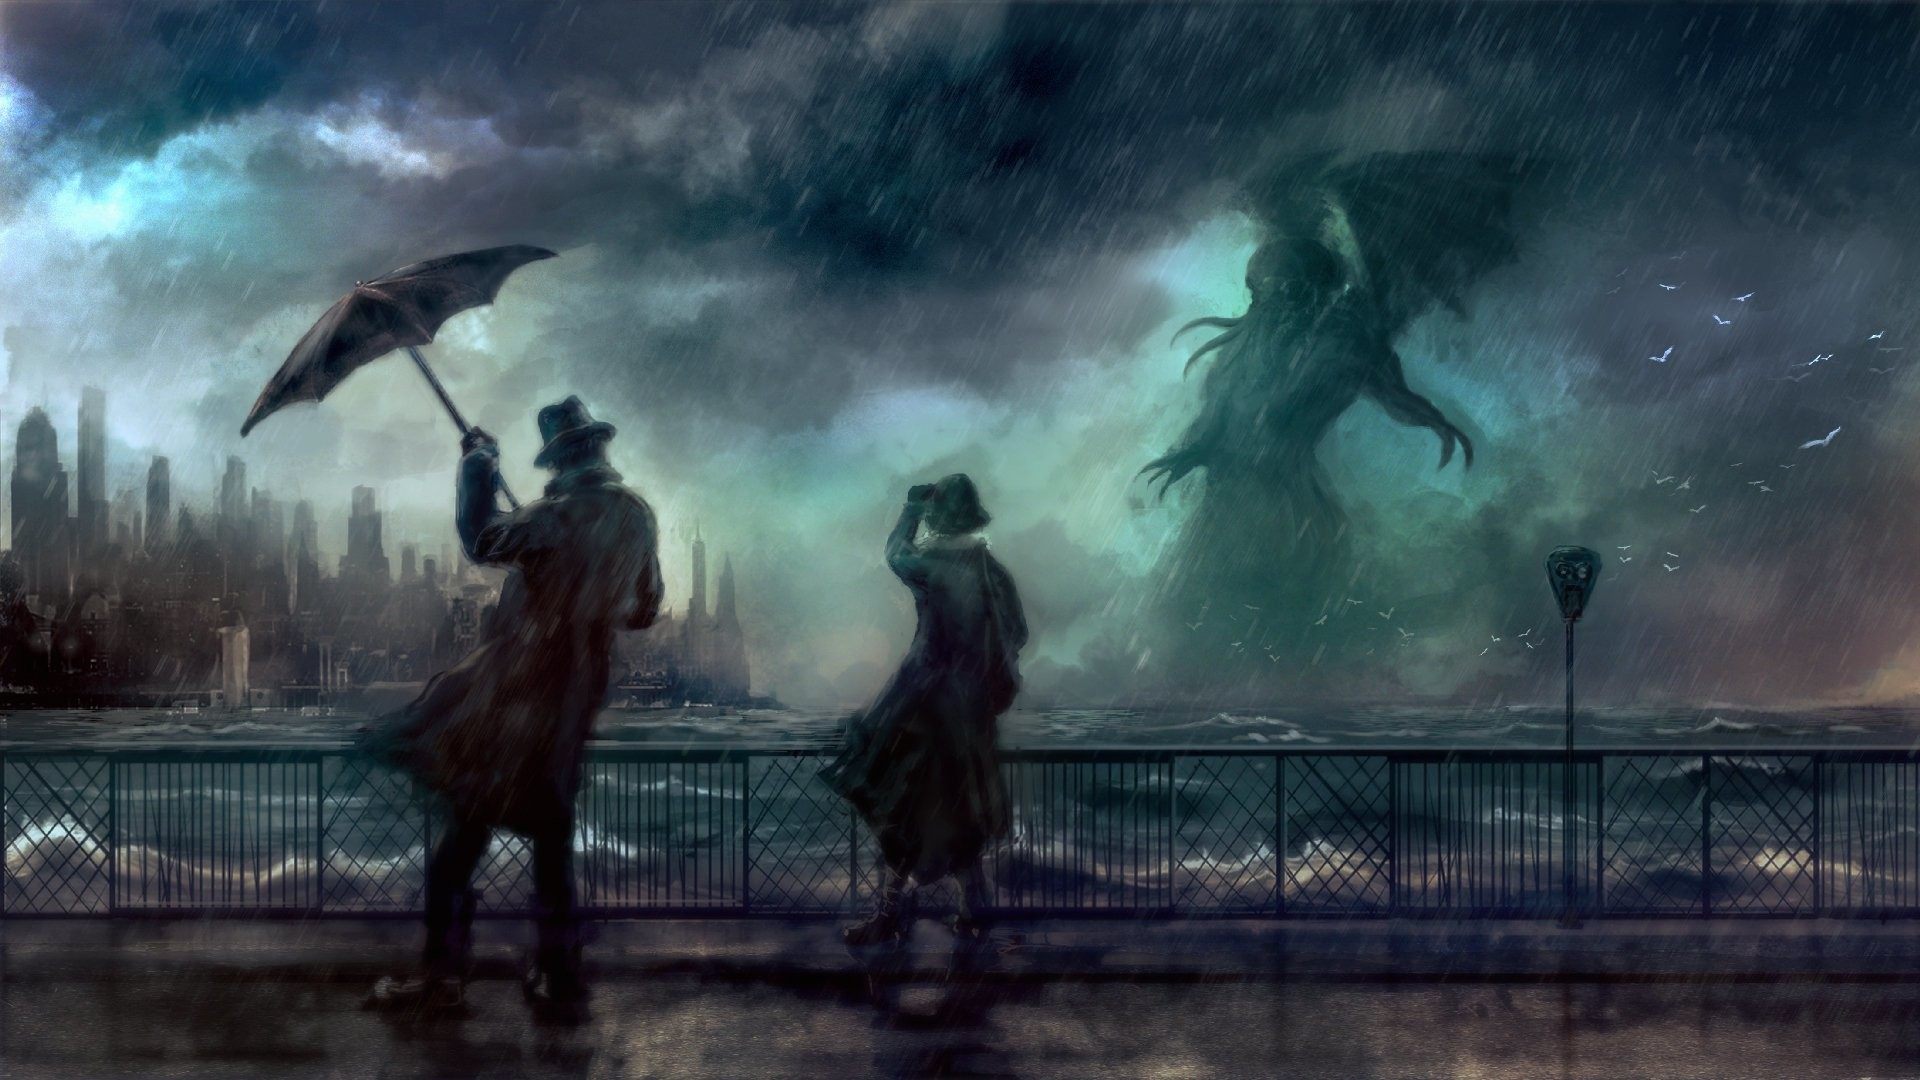 Res: 1920x1080, HD Wallpaper | Background Image ID:601112.  Fantasy Cthulhu